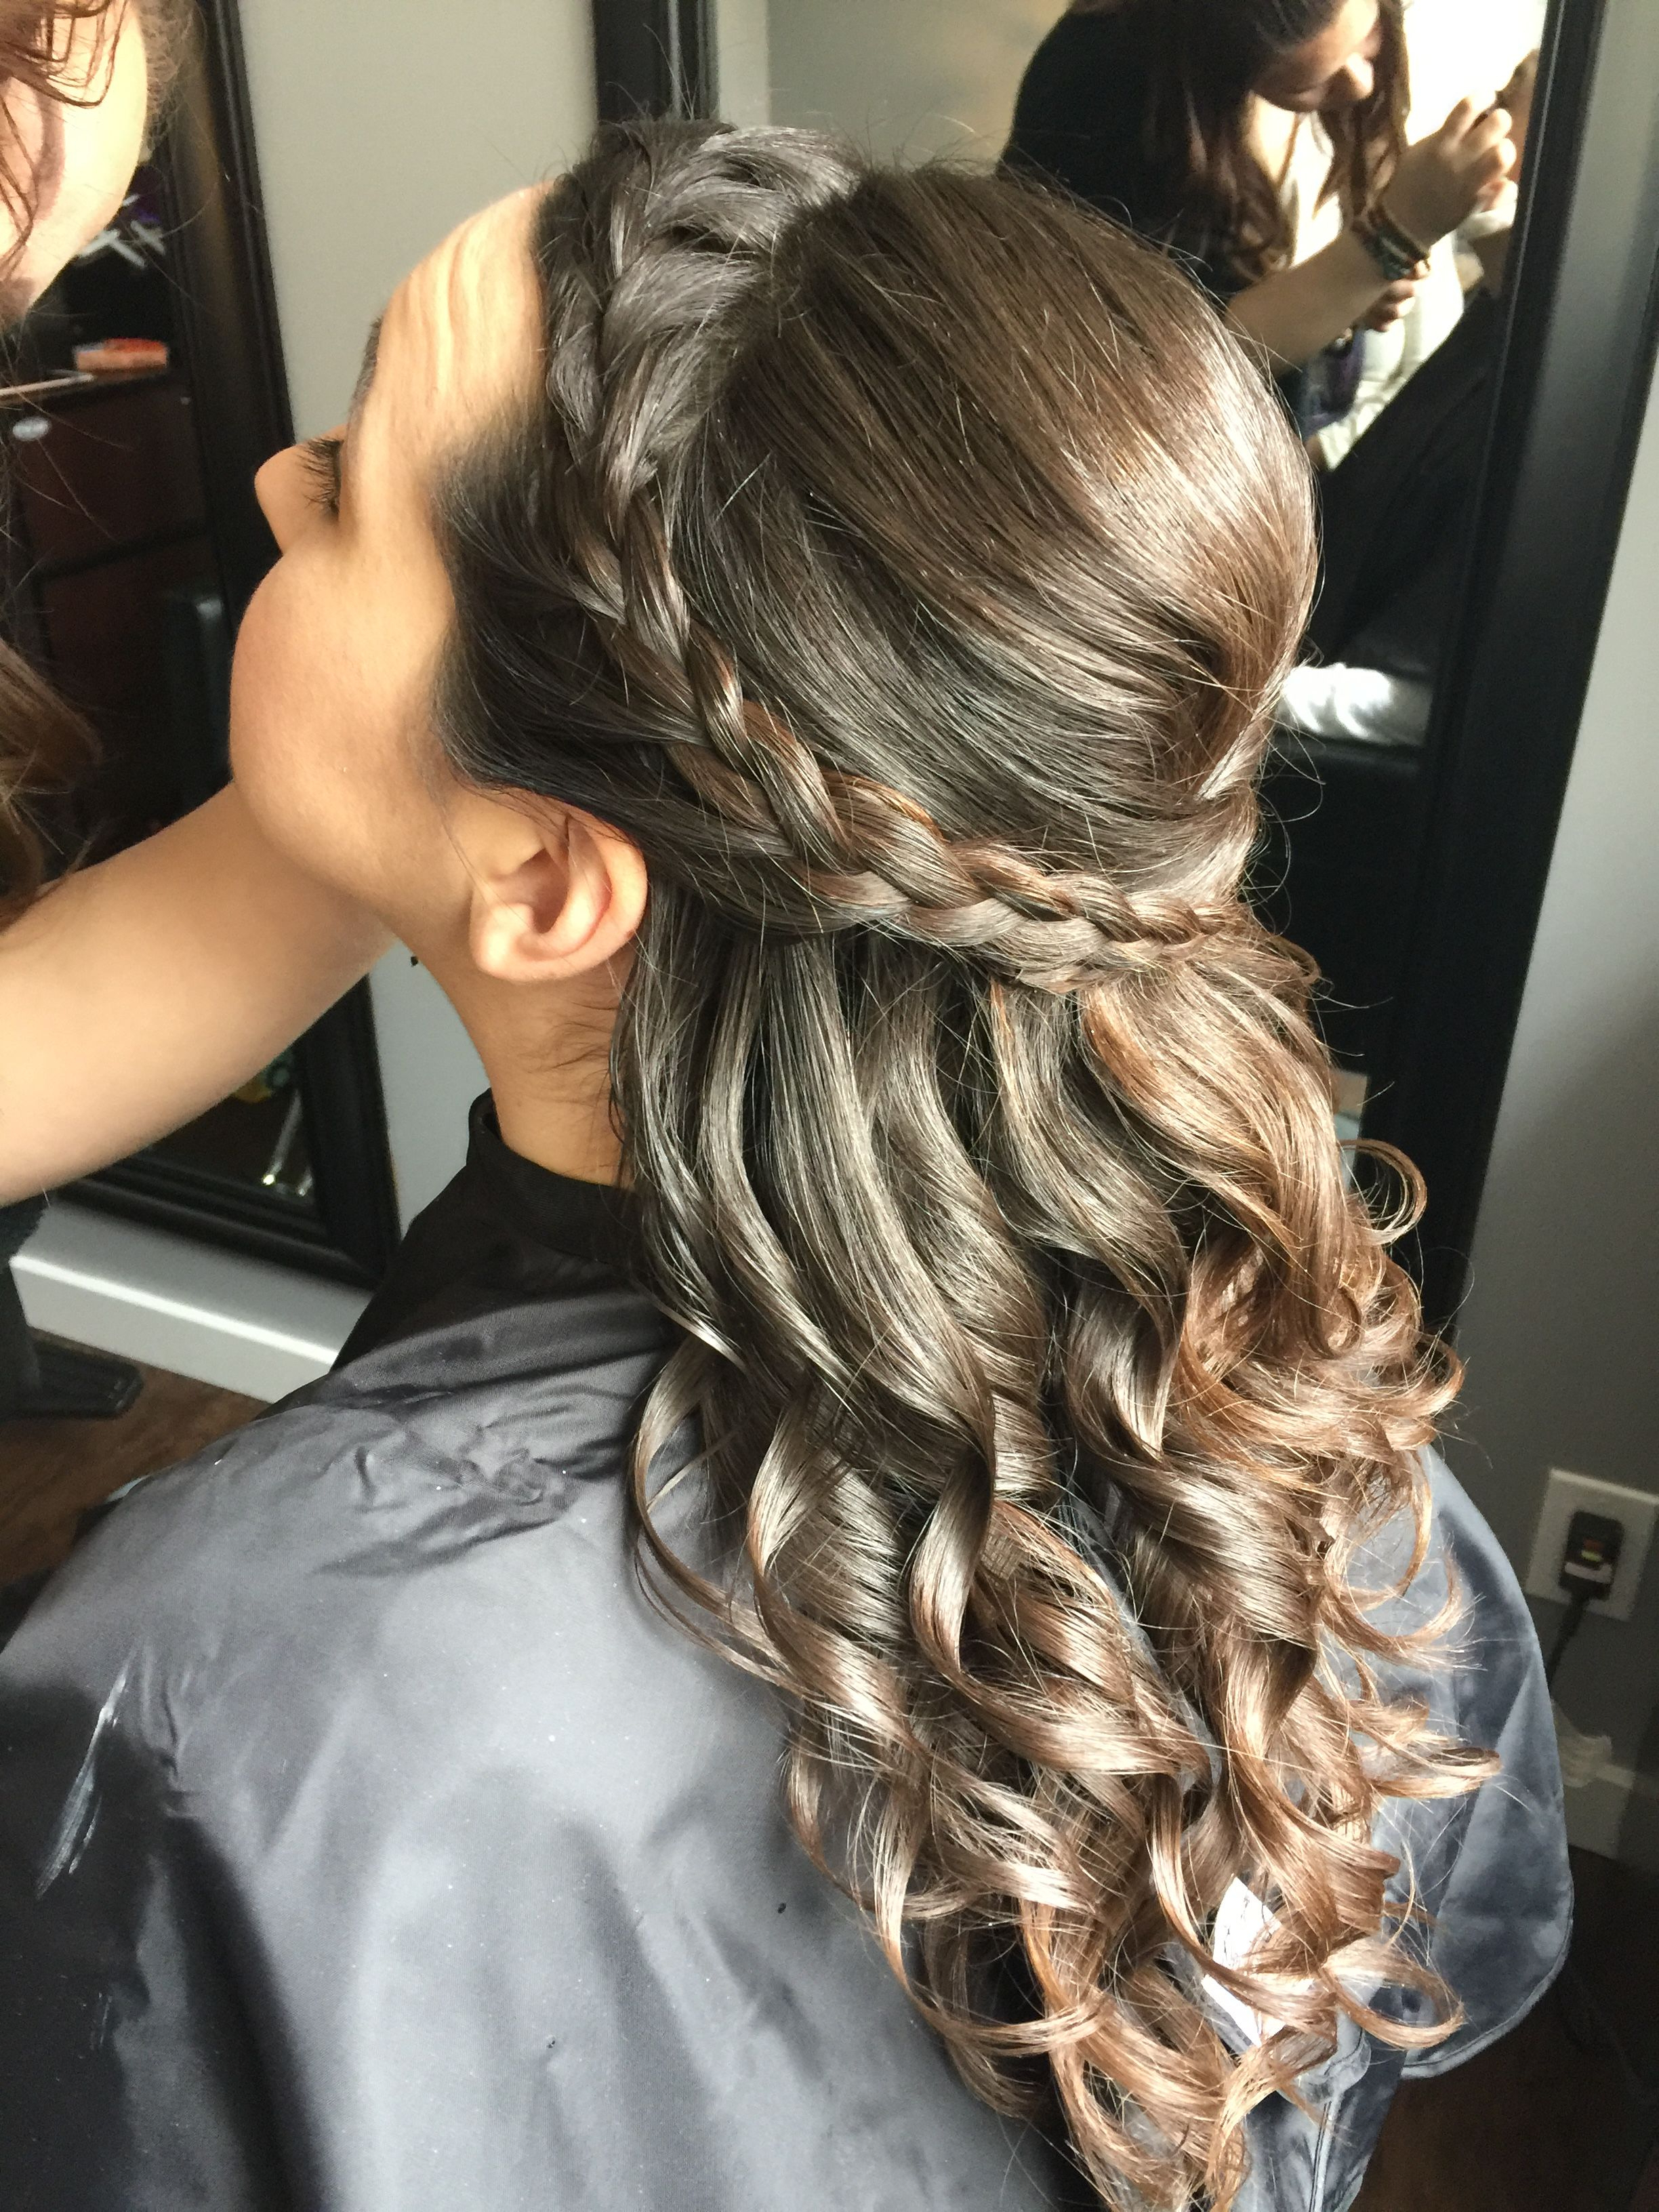 Hairstyles : Half Up Down Rosette Hairstyle Fun Prom And With Inside Favorite Rosette Curls Prom Hairstyles (View 7 of 20)